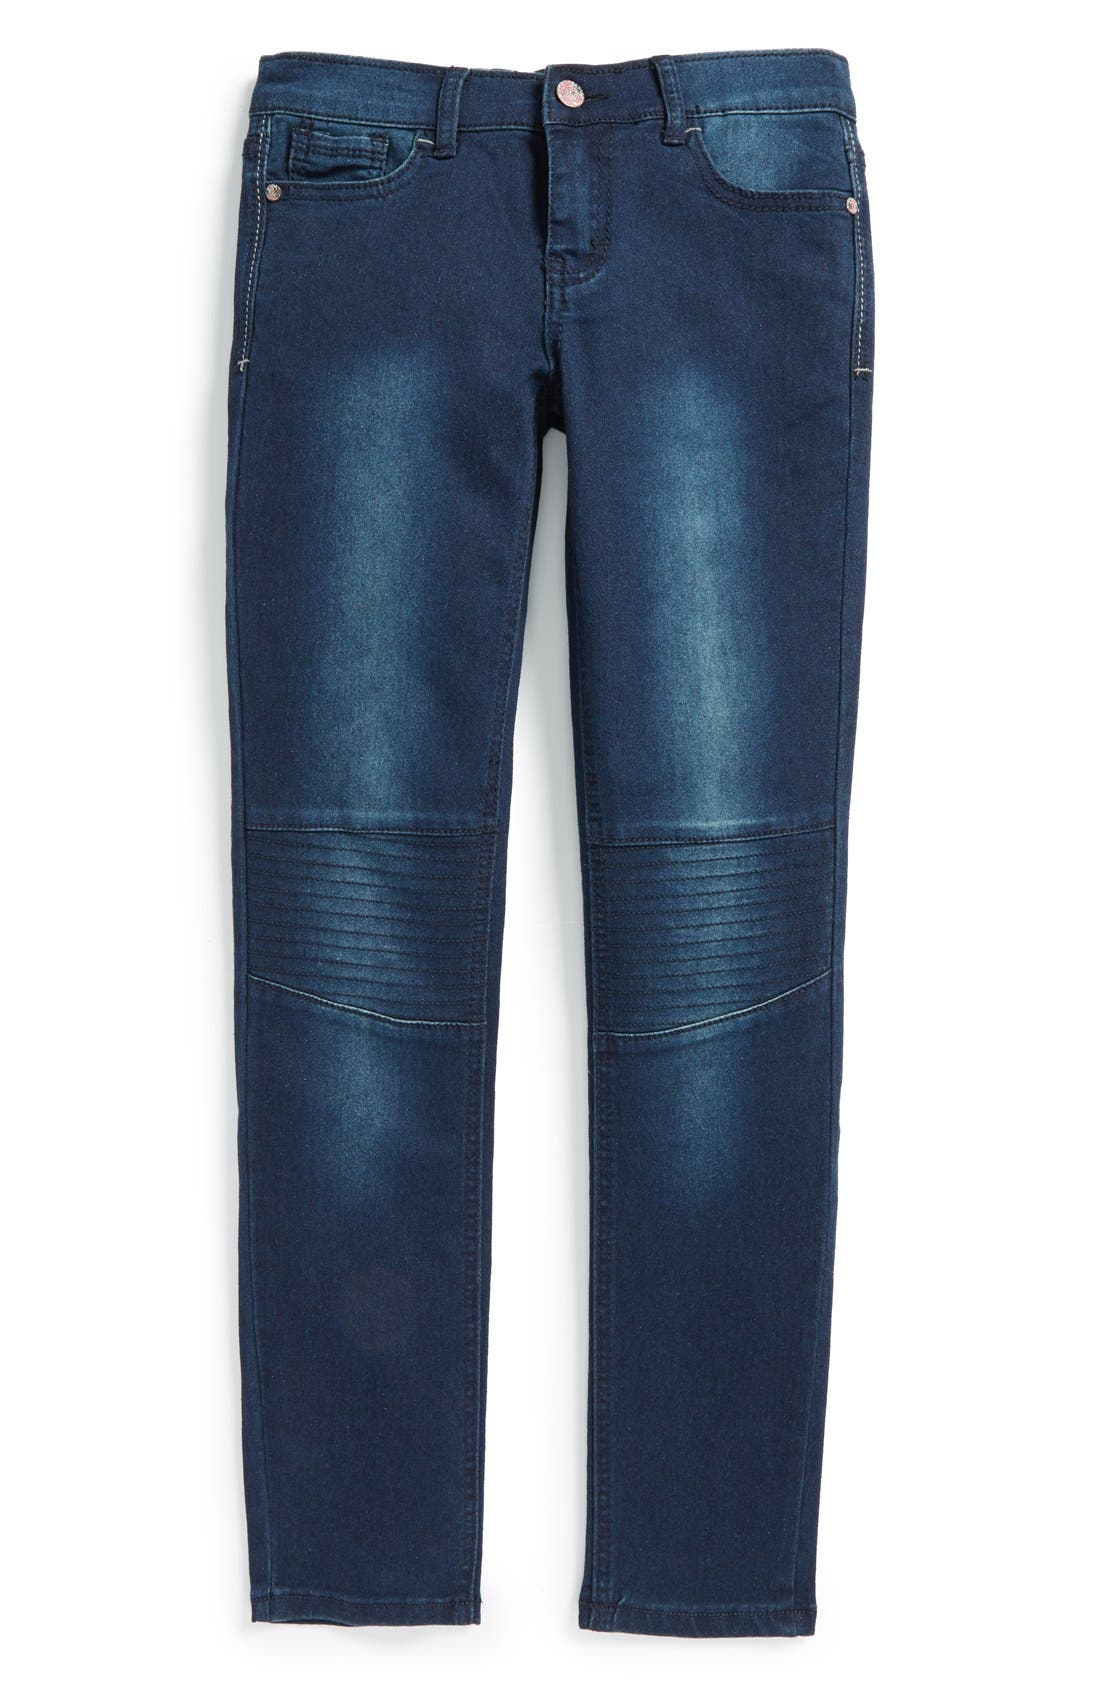 Alternate Image 1 Selected - Vigoss Moto Skinny Jeans (Big Girls)